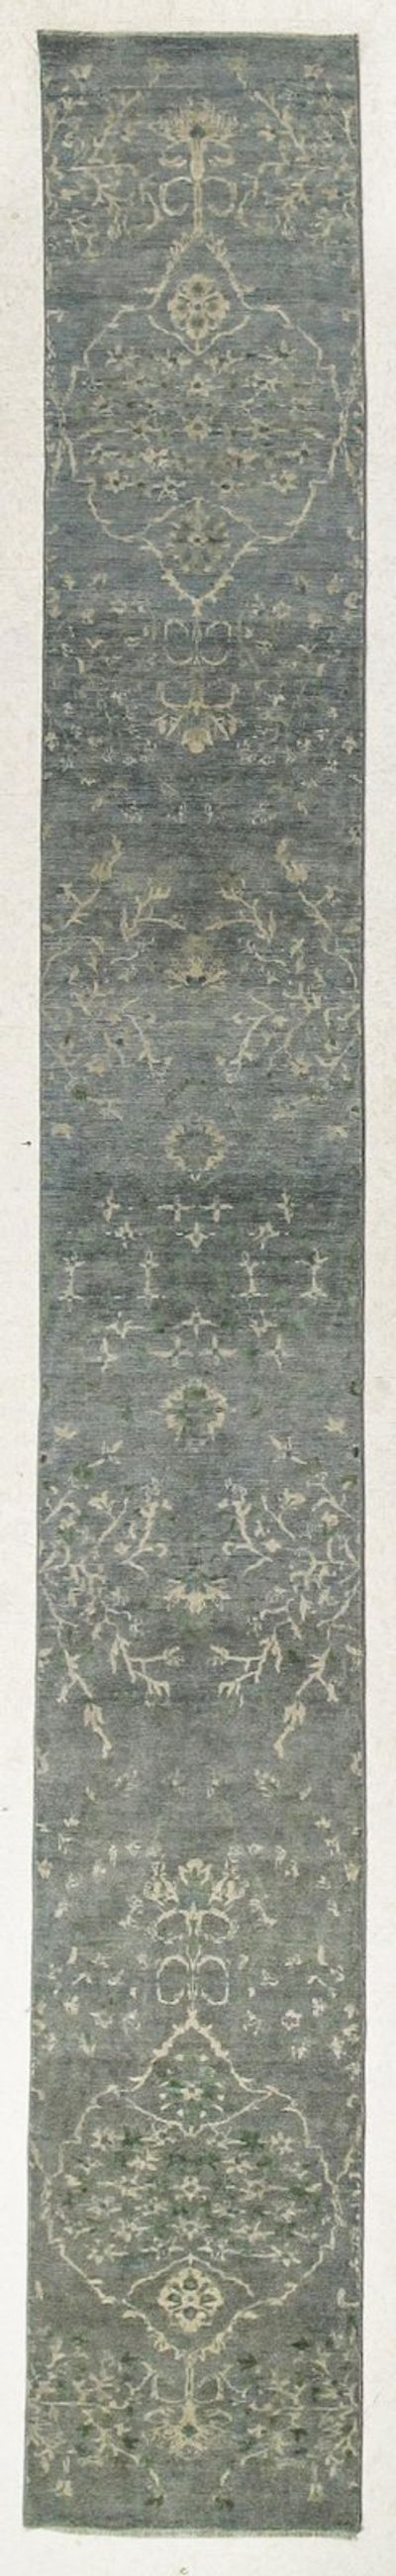 Light Blue Kothan Rug #7685 • 2′7″ x 21′2″ • Wool on Silk